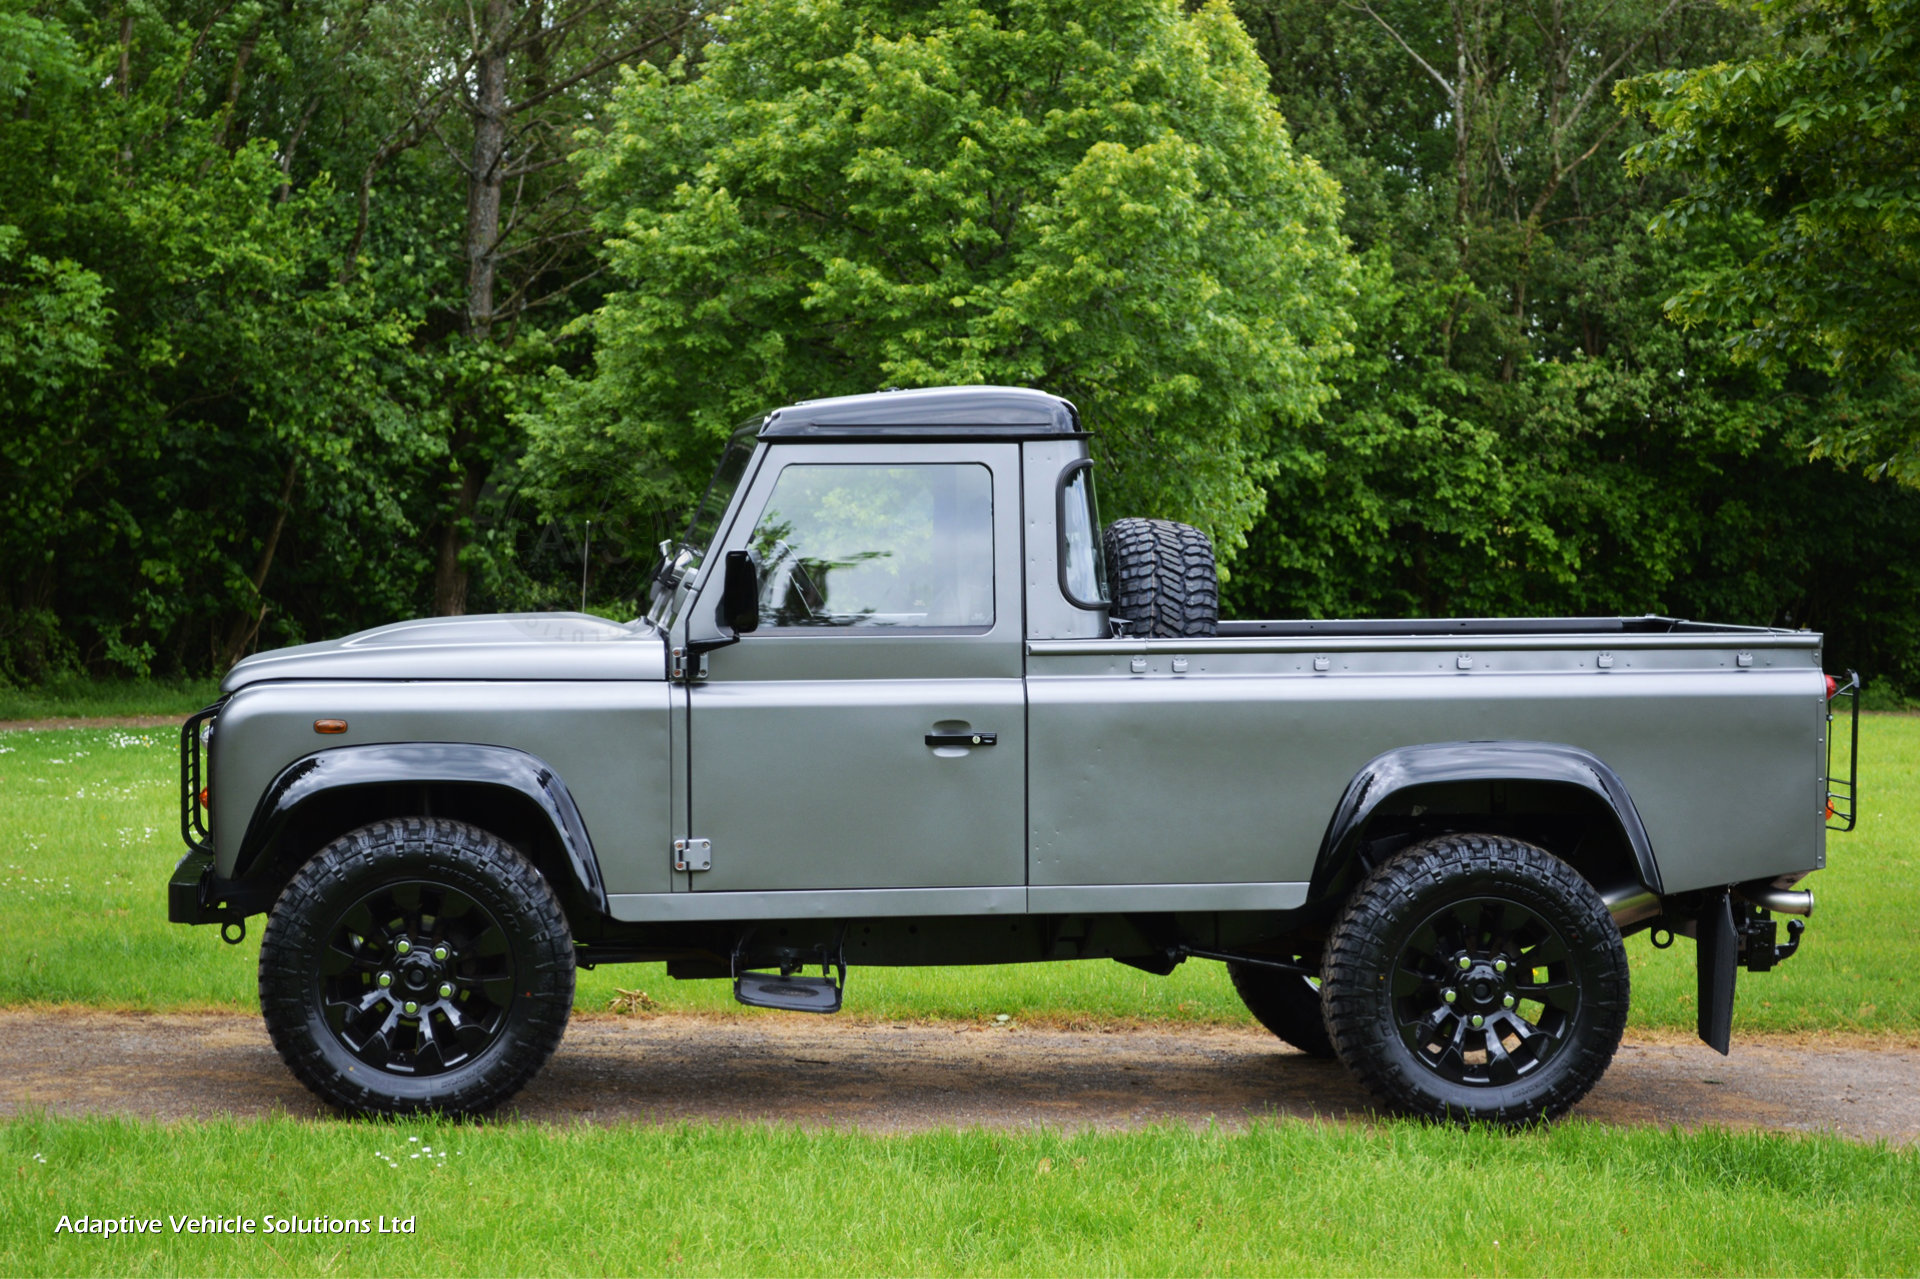 Bespoke Land Rover Defender 110 Pickup Available Now